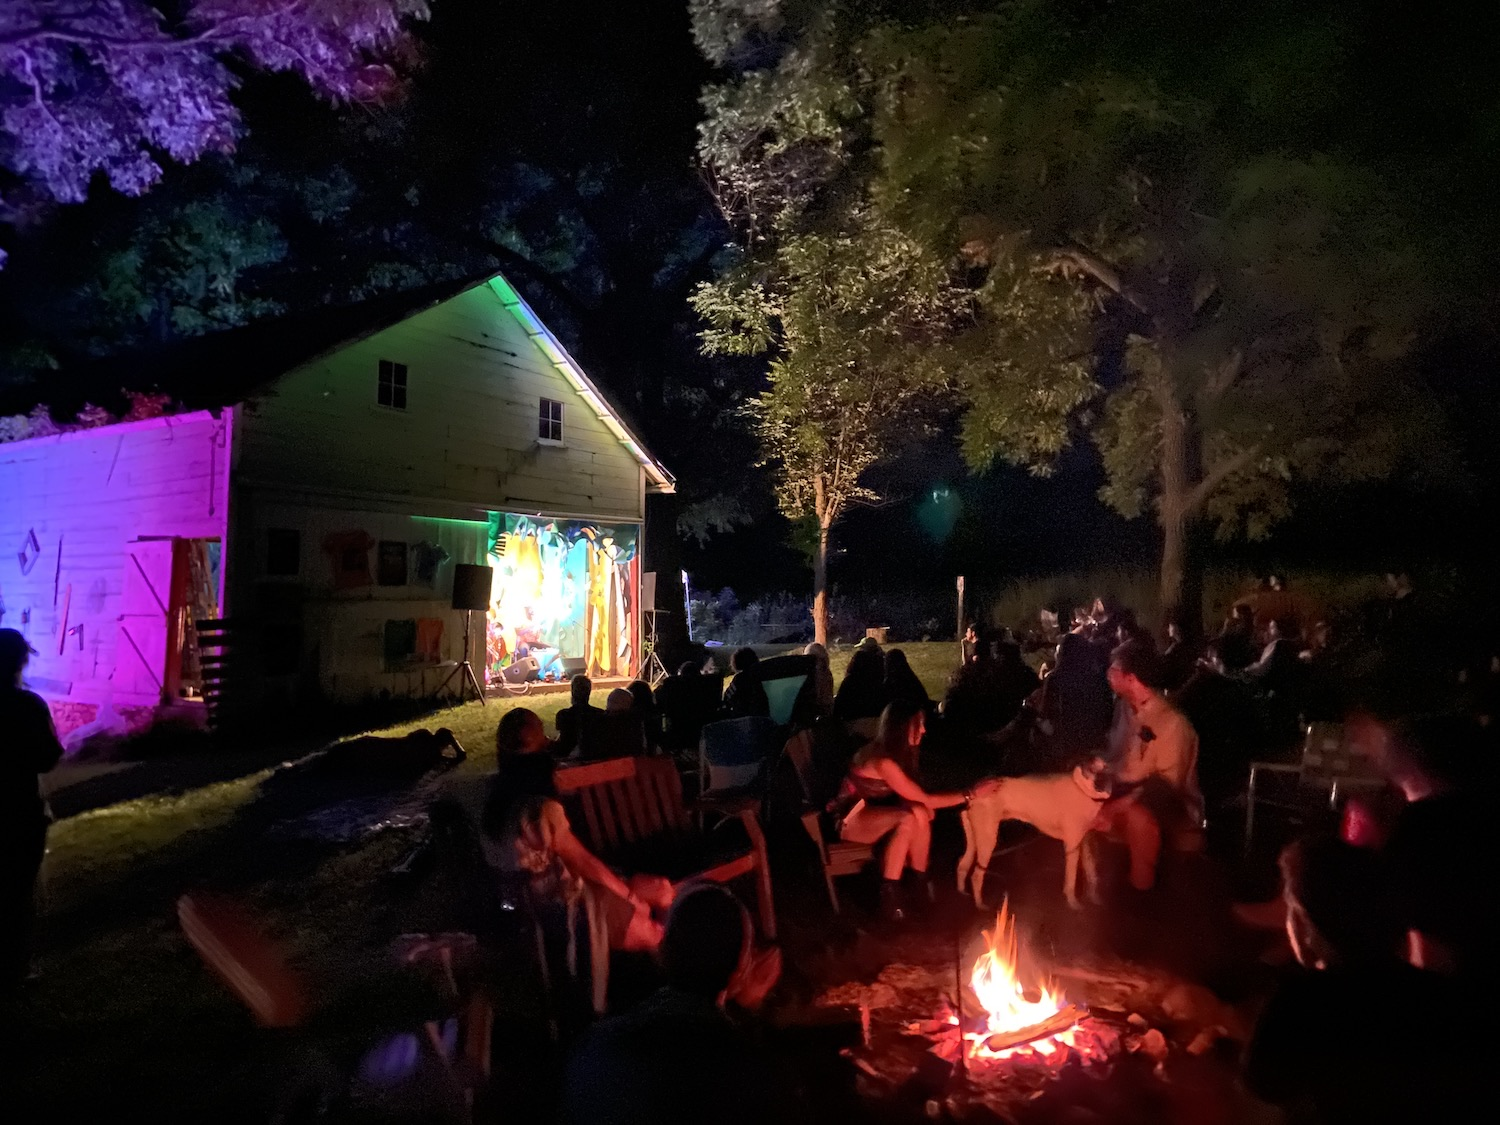 The stage lights and a campfire illuminating the grounds at a tiny music festival in Wisconsin.